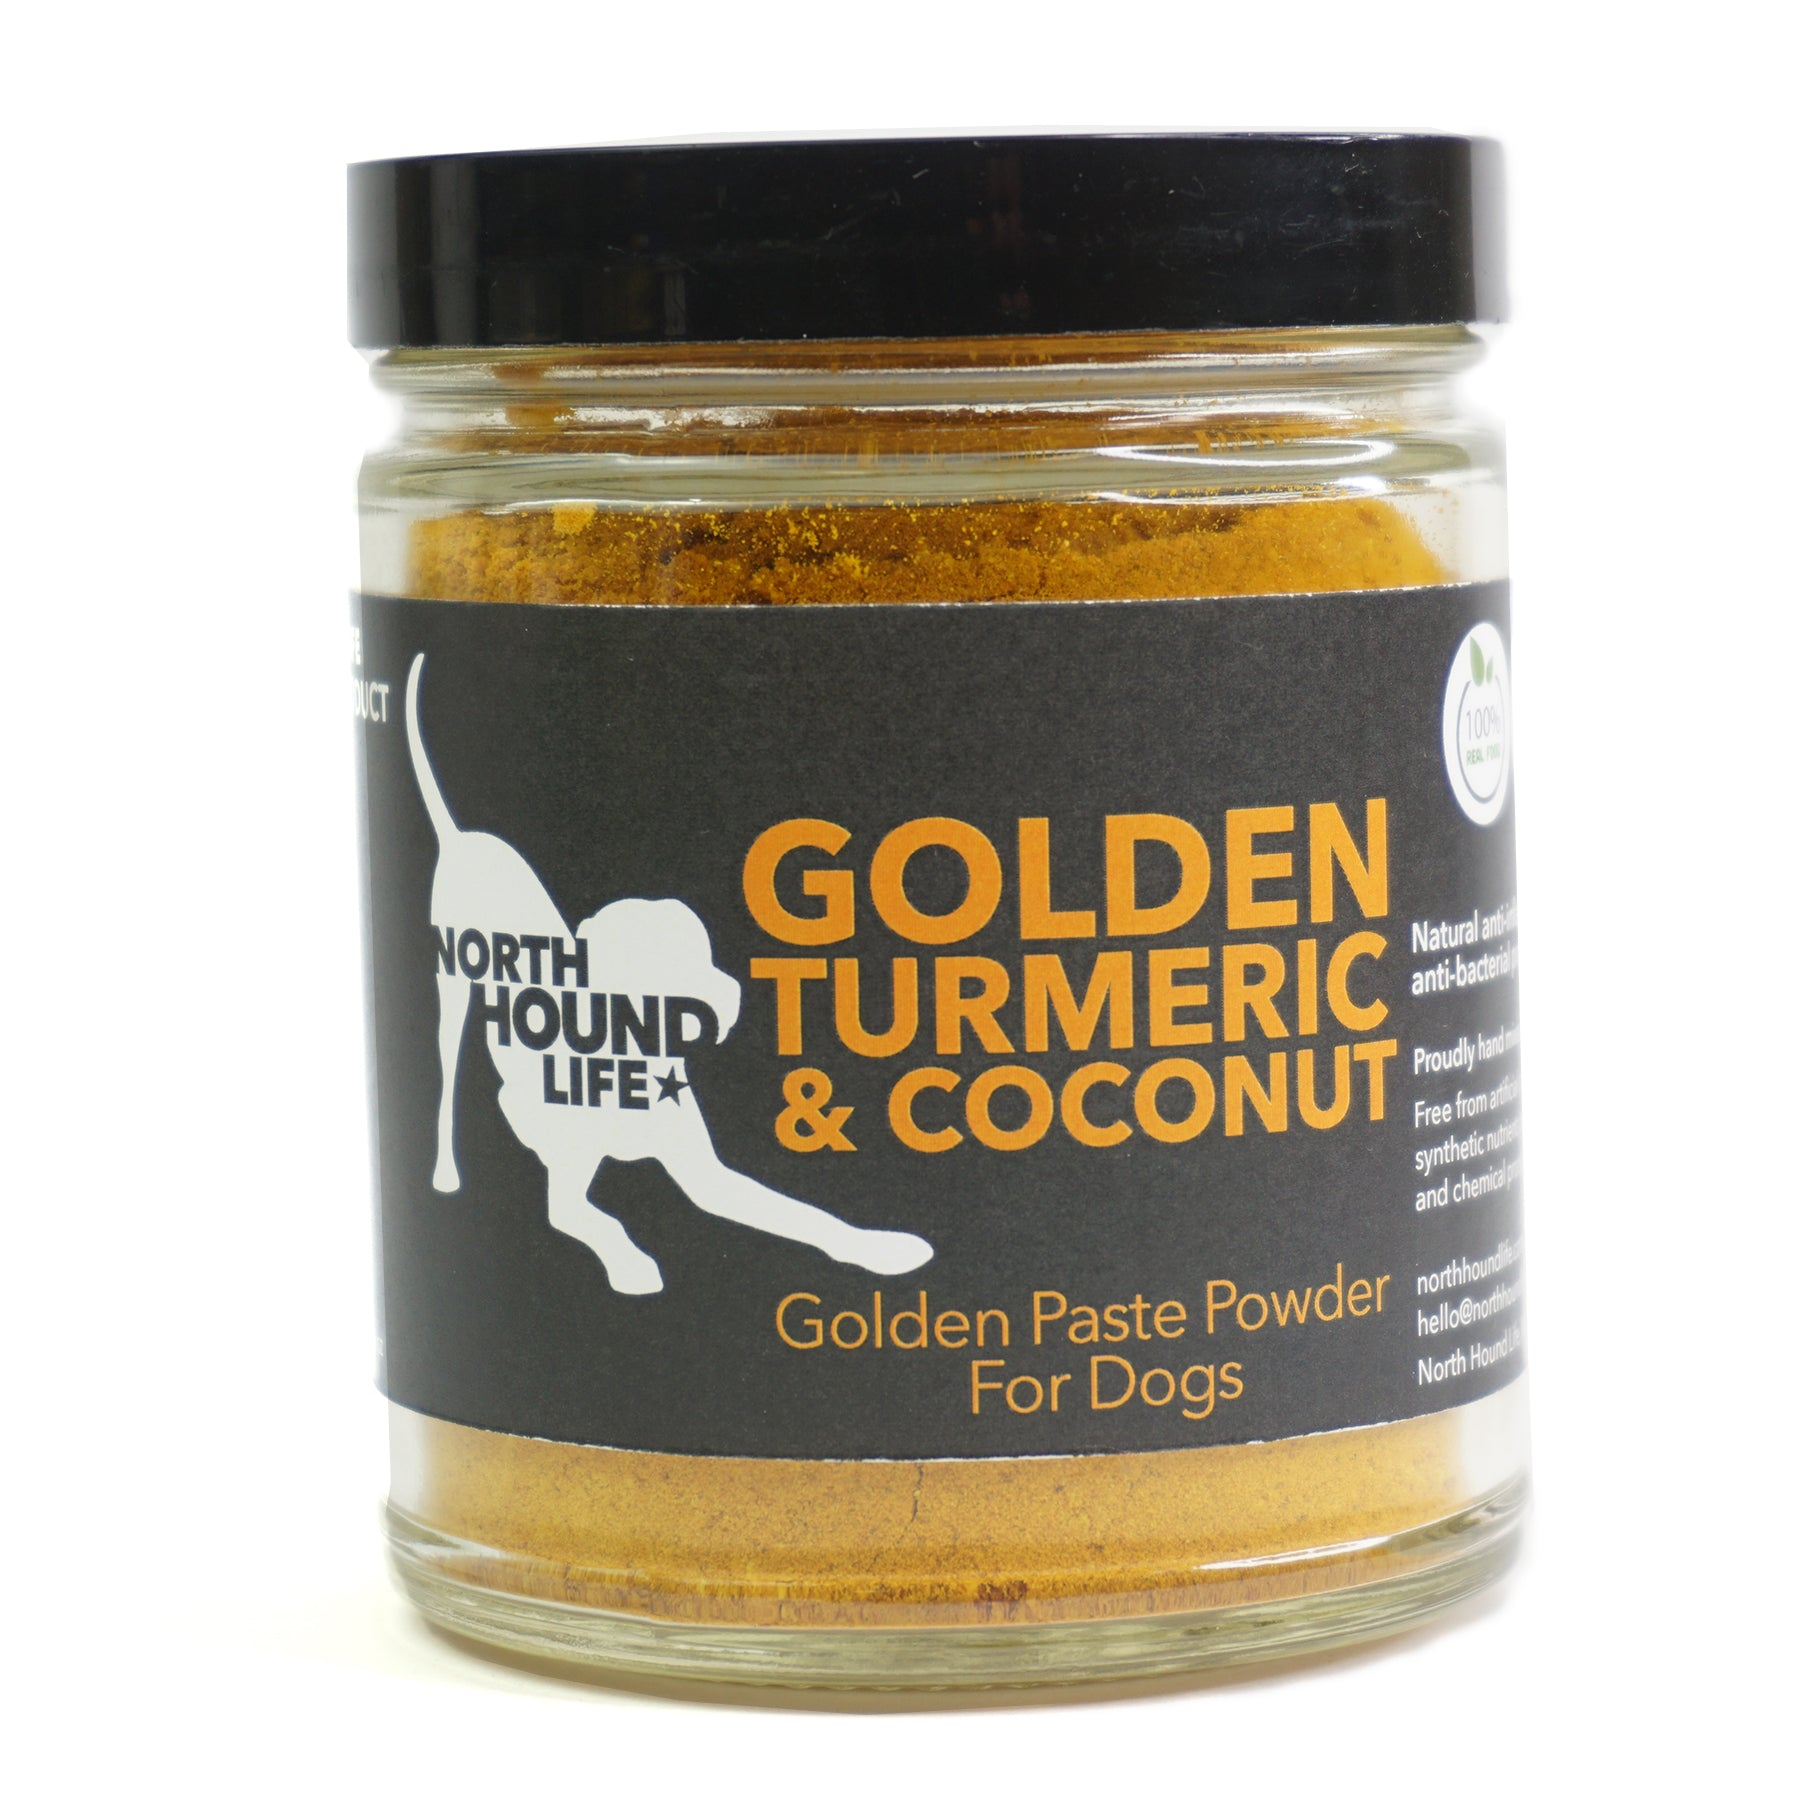 Golden Turmeric & Coconut